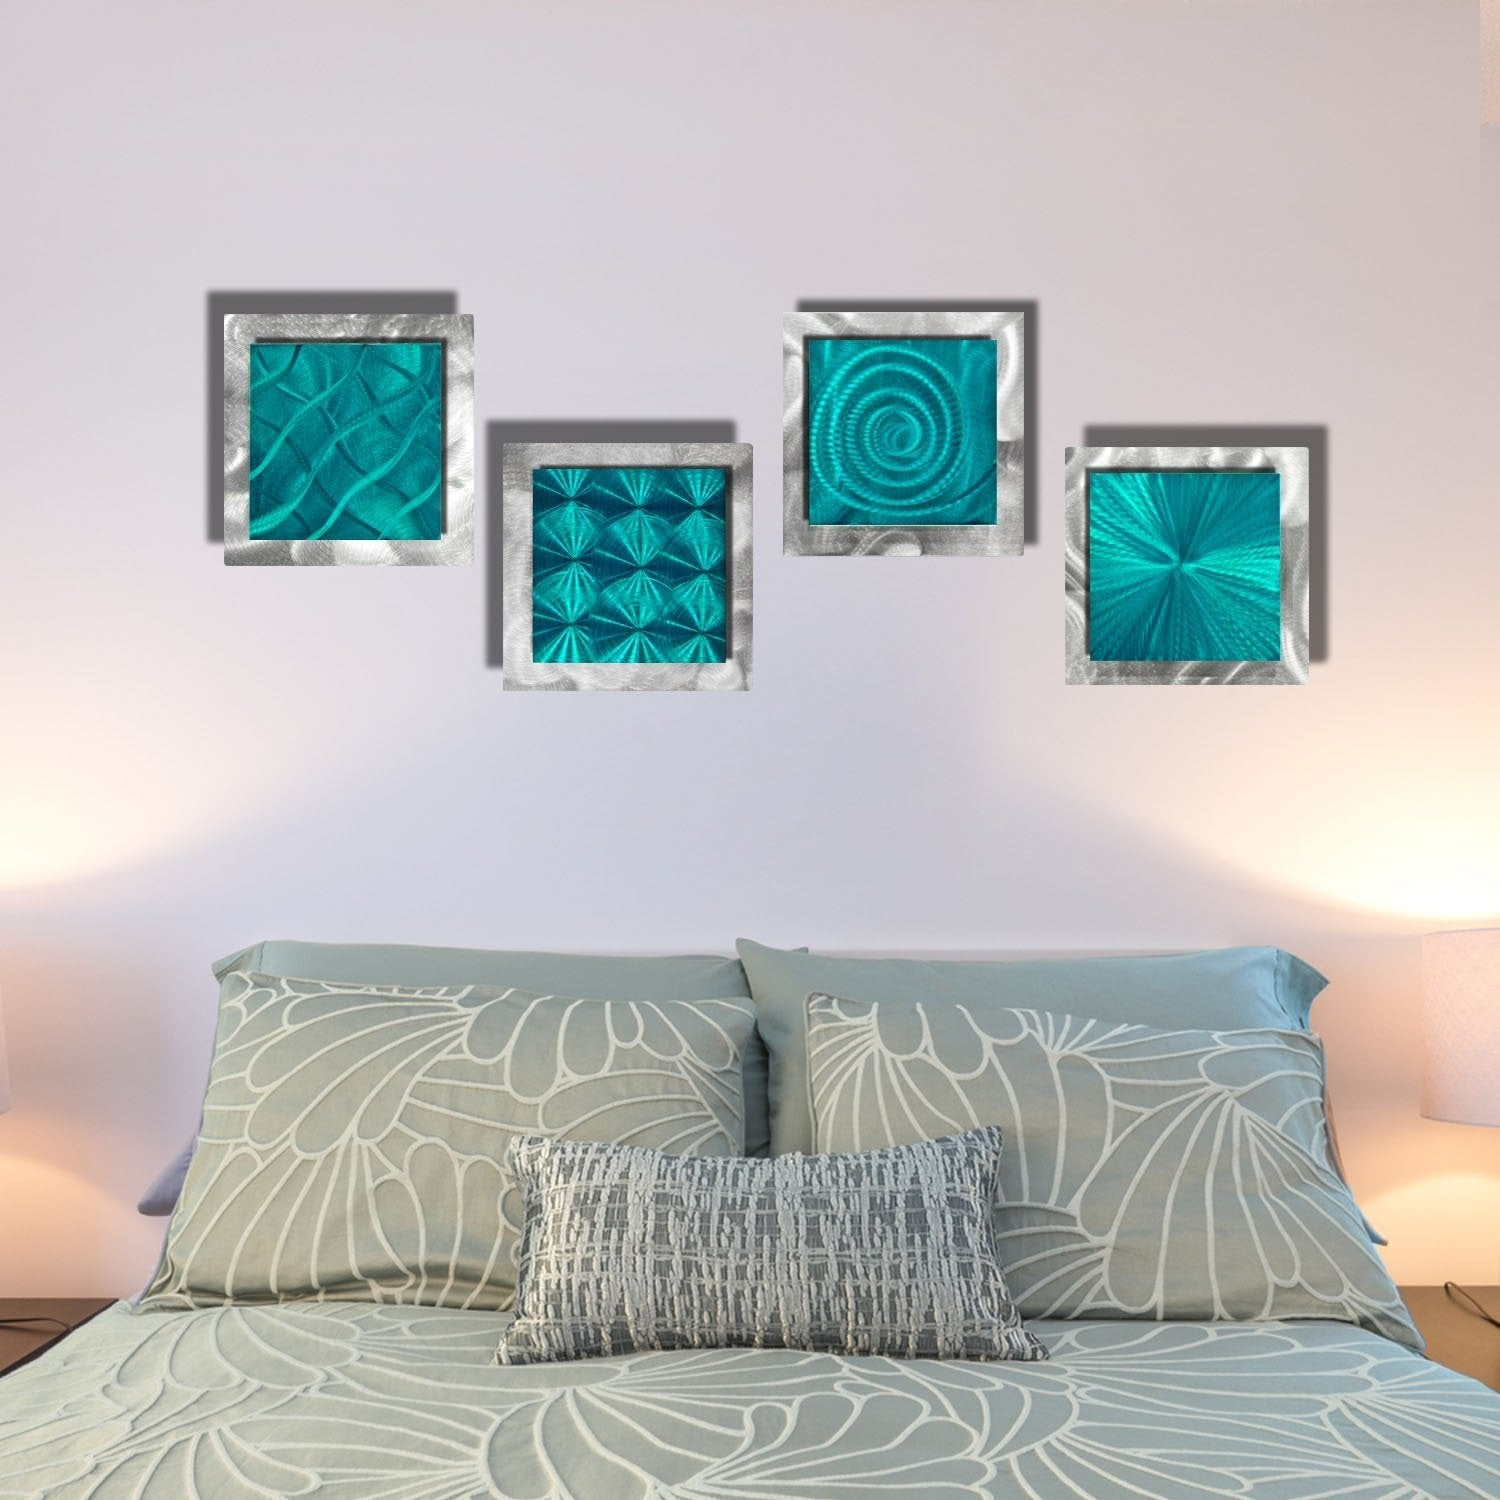 Statements2000 Teal Blue/Silver Metal Wall Art Accent Sculpture Decor by  Jon Allen (Set of 4) - 4 Squares Teal